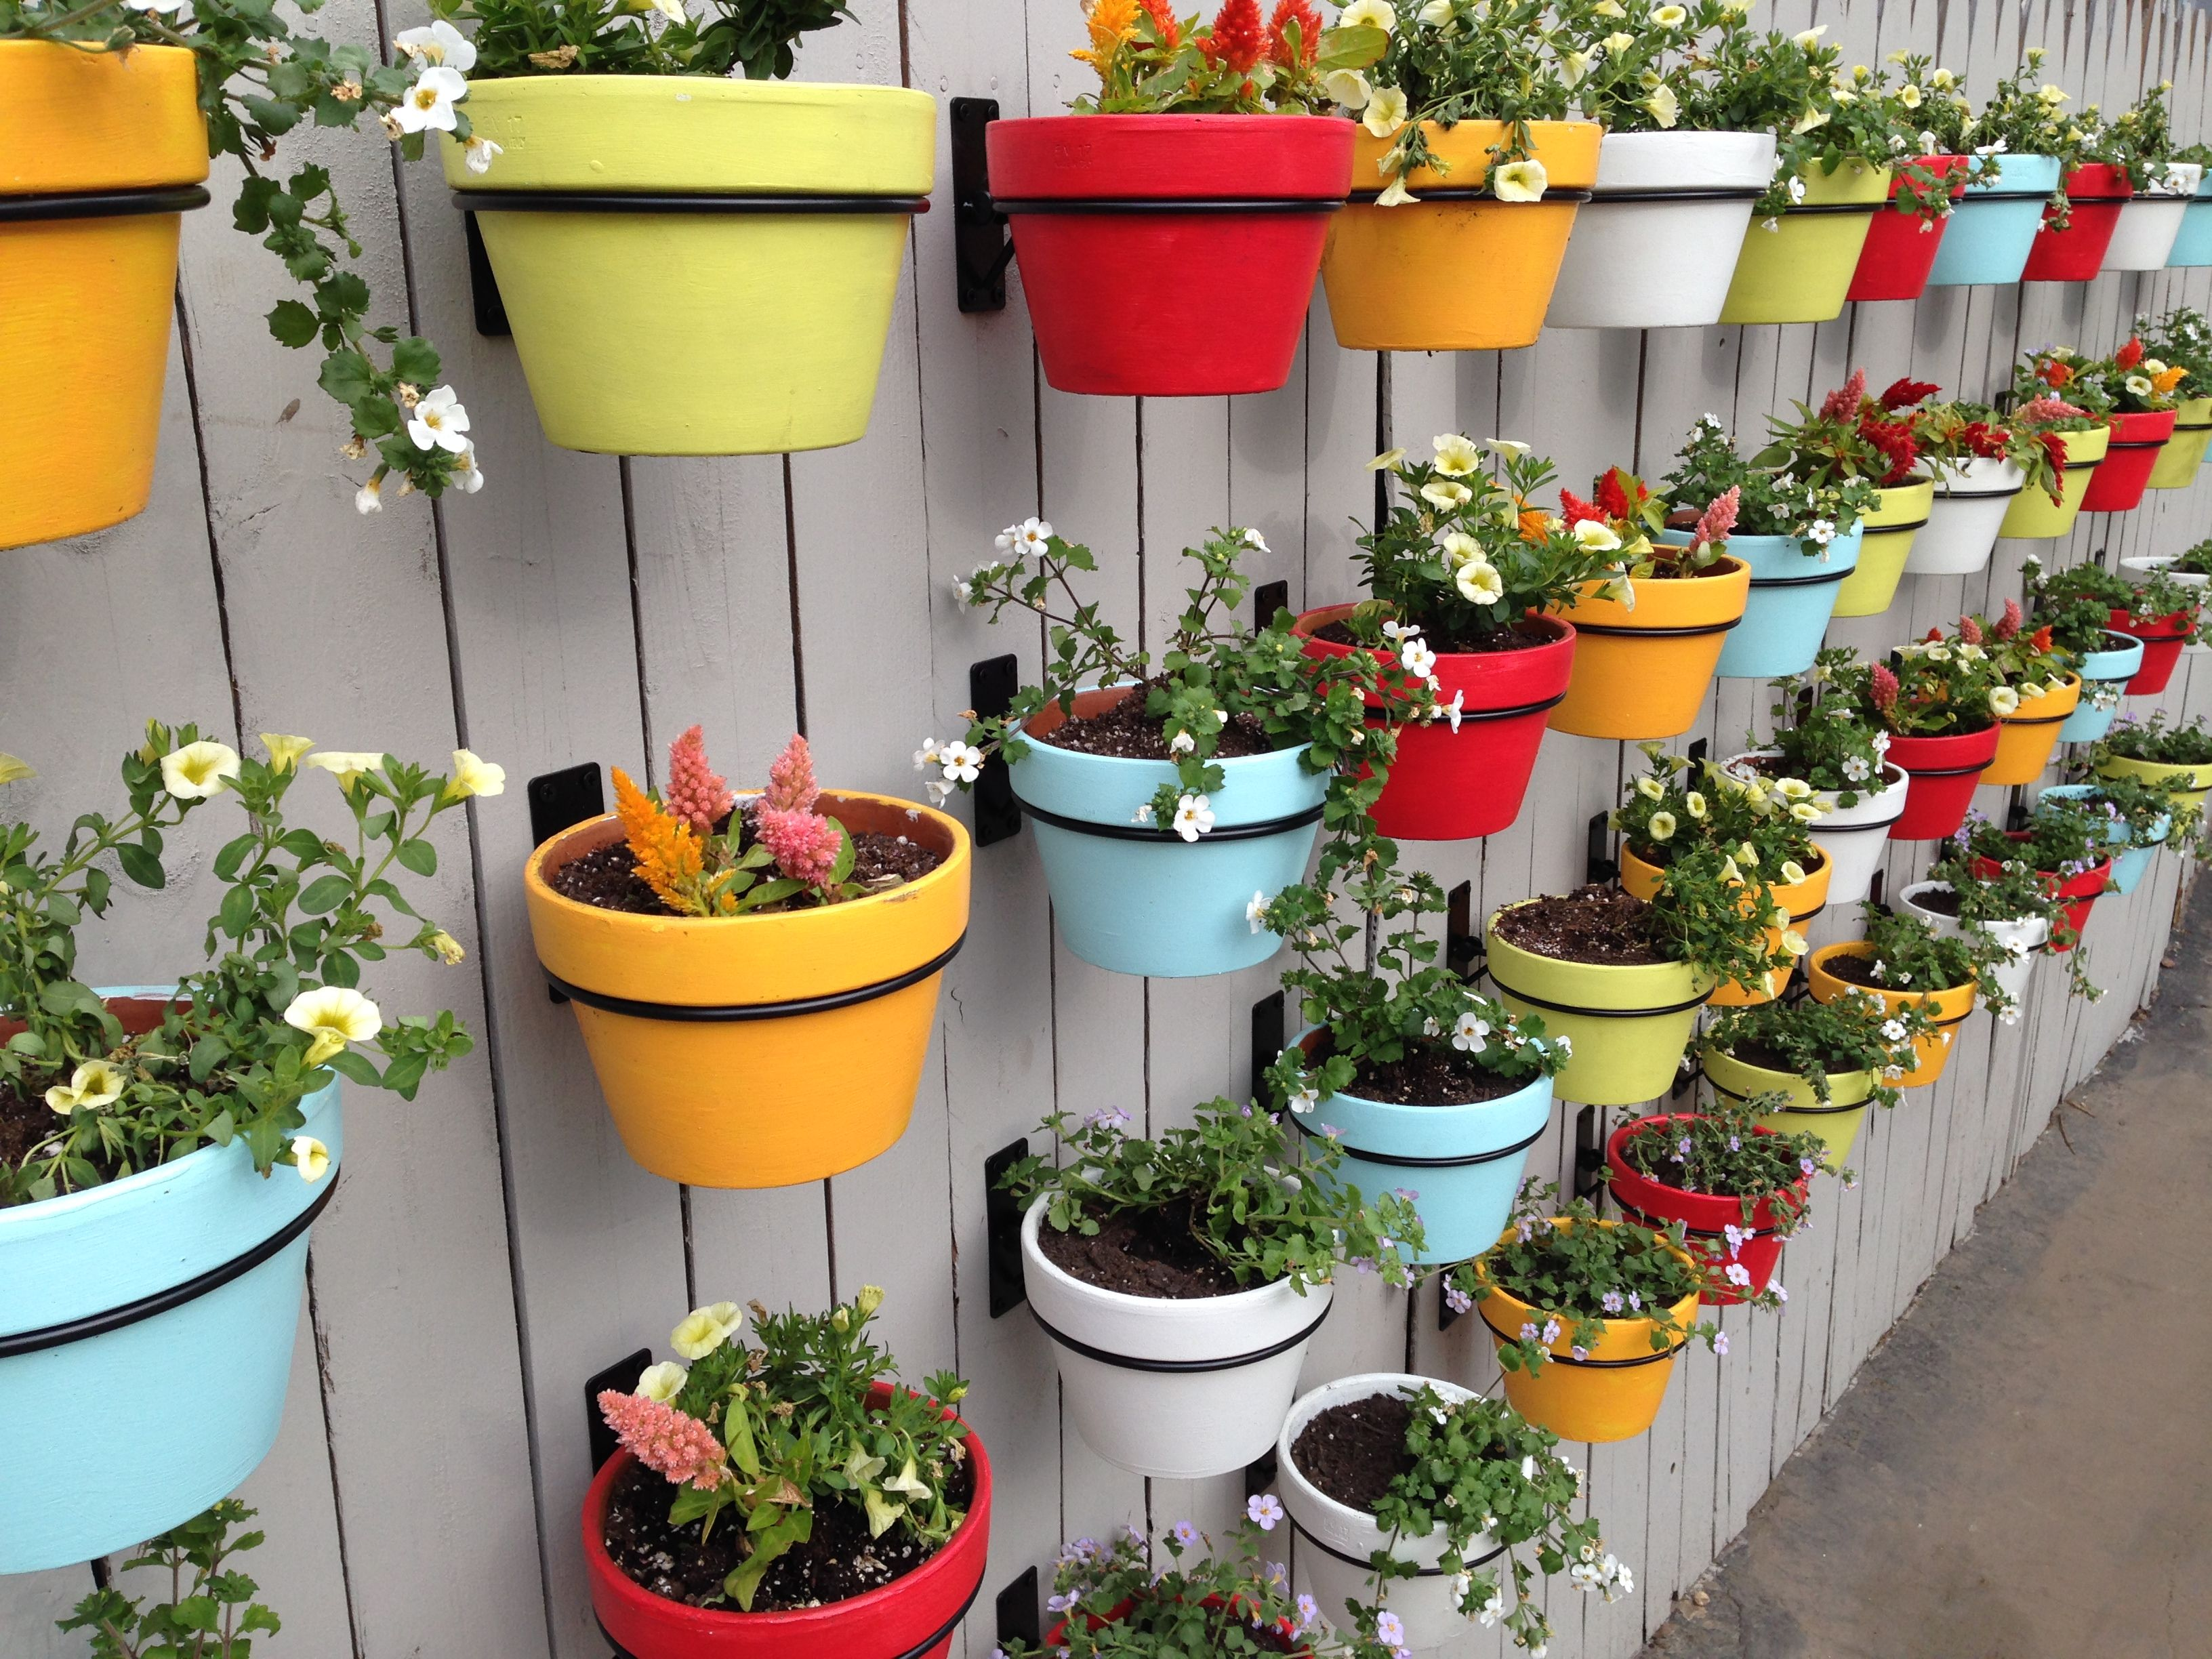 Easy Diy For Your Backyard A Colorful Living Wall Paint Basic Flower Pots A Variety Of Bright Co Flower Pots Outdoor Herb Garden Pots Backyard Garden Design